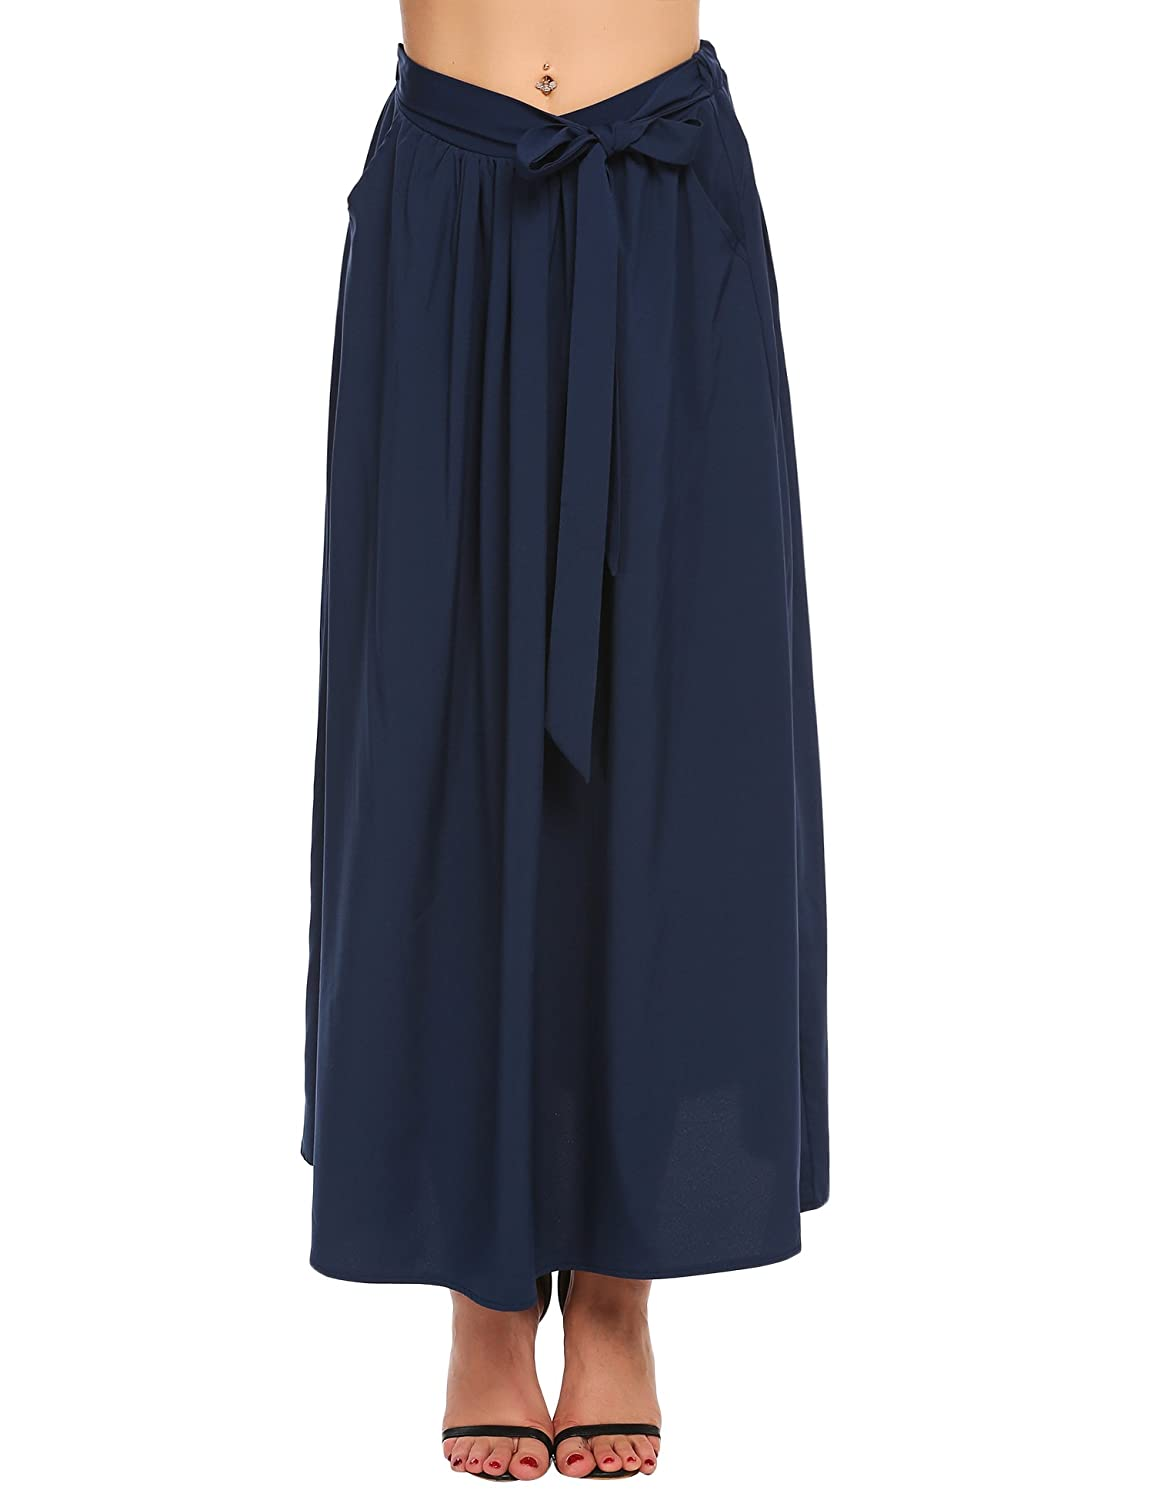 Chigant SKIRT Navy レディース B076LYDYPX 3L|Purplish Blue Navy Navy Purplish Blue Blue Navy 3L, スペース ファクトリー:51077d29 --- rjatechnologies.com.sg